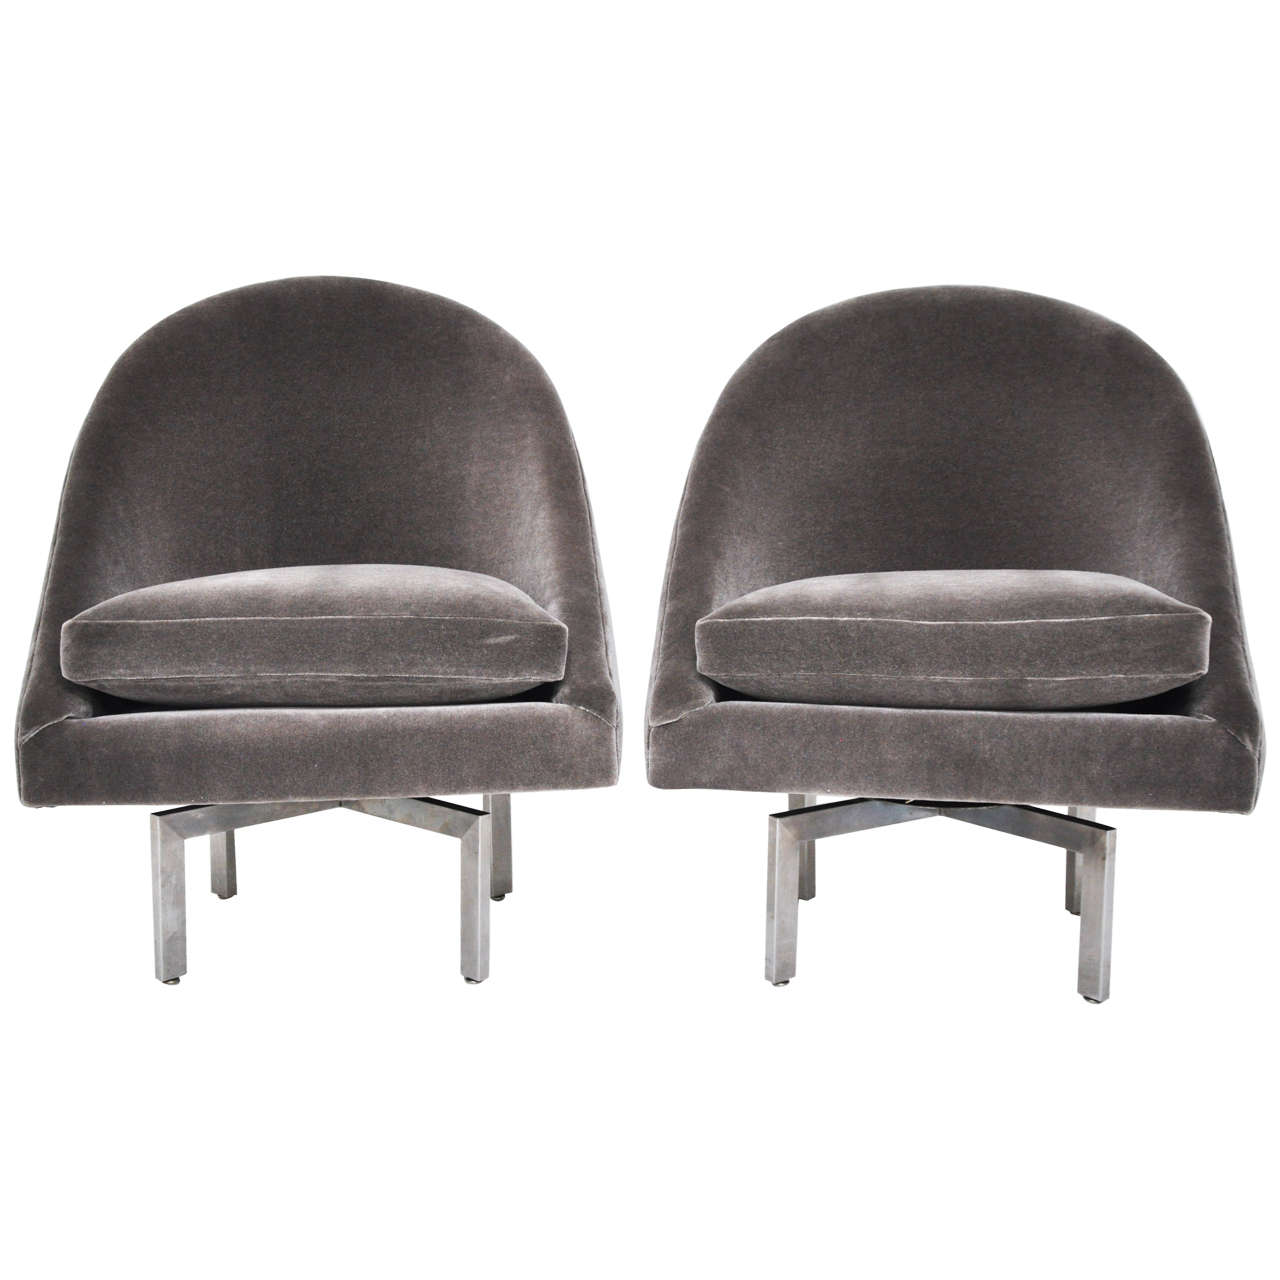 swivel chair mid century bungee chairs target at 1stdibs